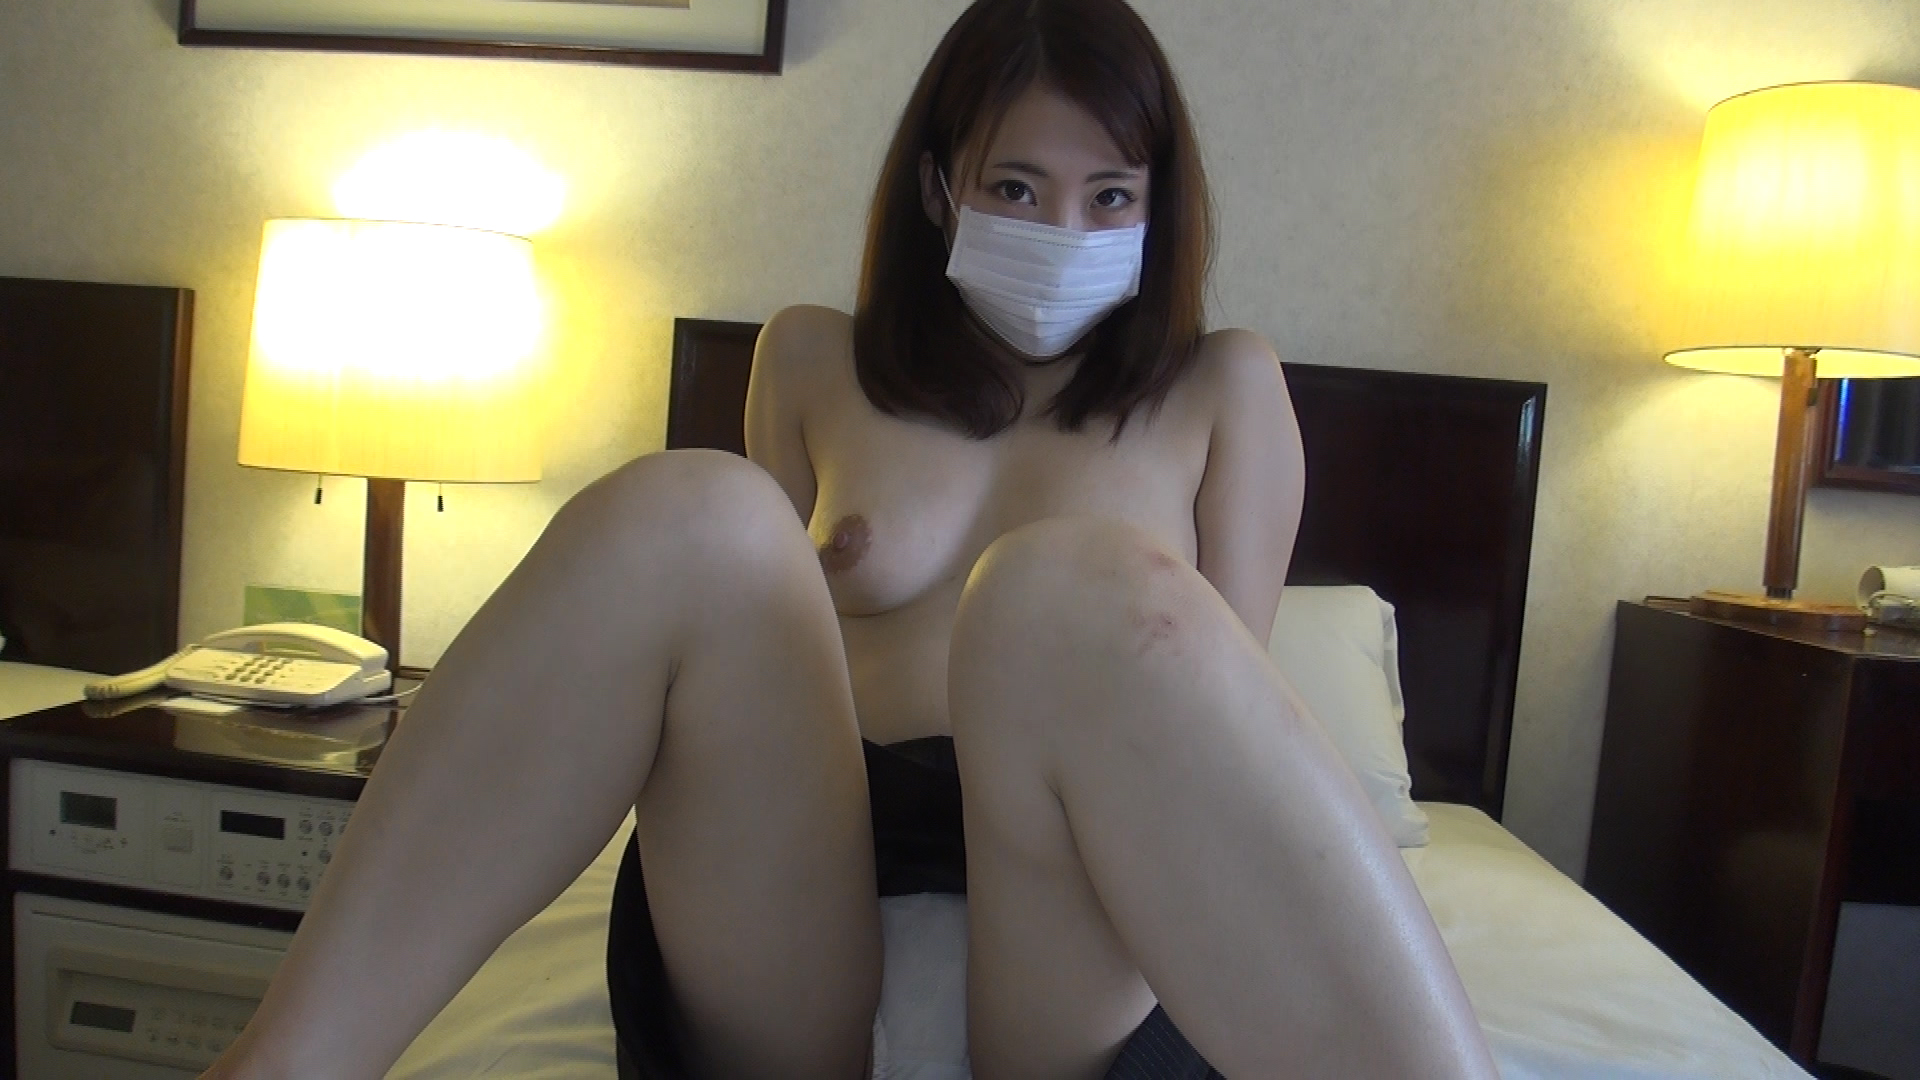 FC2 PPV 389809 shooting in the slender, natural, cute Kana-CHAN who wanted to take off!